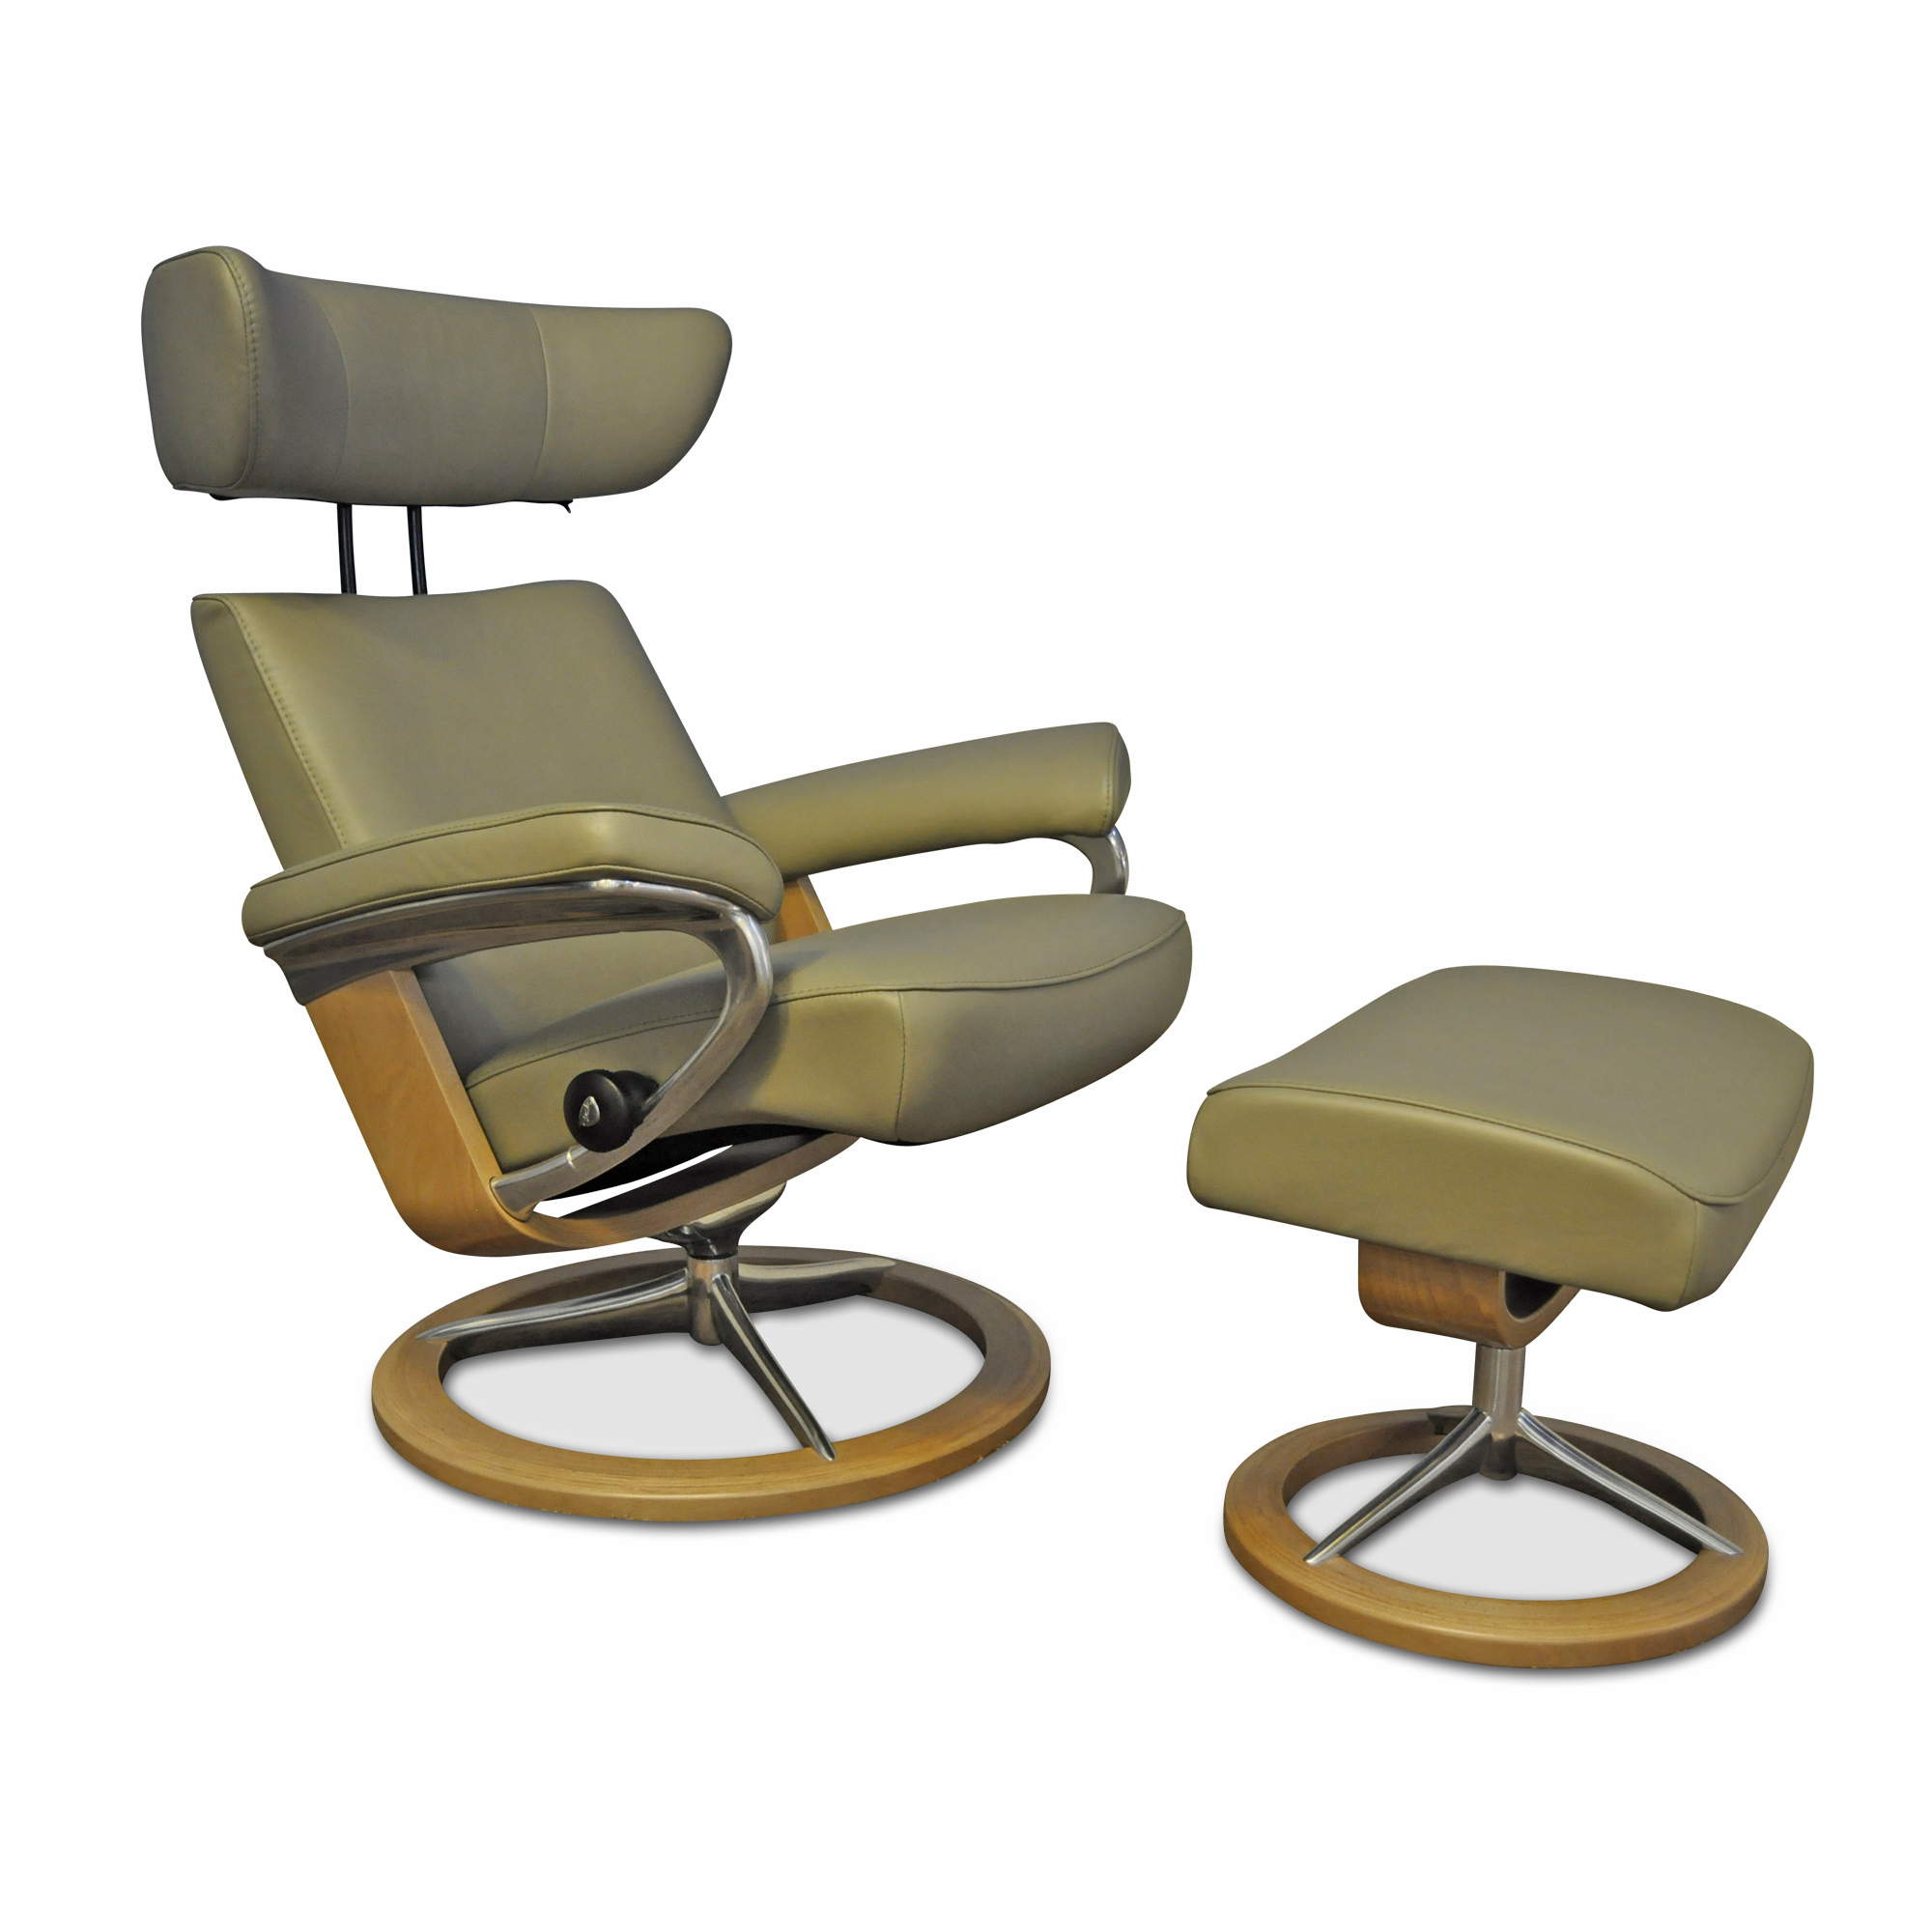 sessel viva m mit hocker in olive stressless sessel g nstig kaufen m belfirst. Black Bedroom Furniture Sets. Home Design Ideas